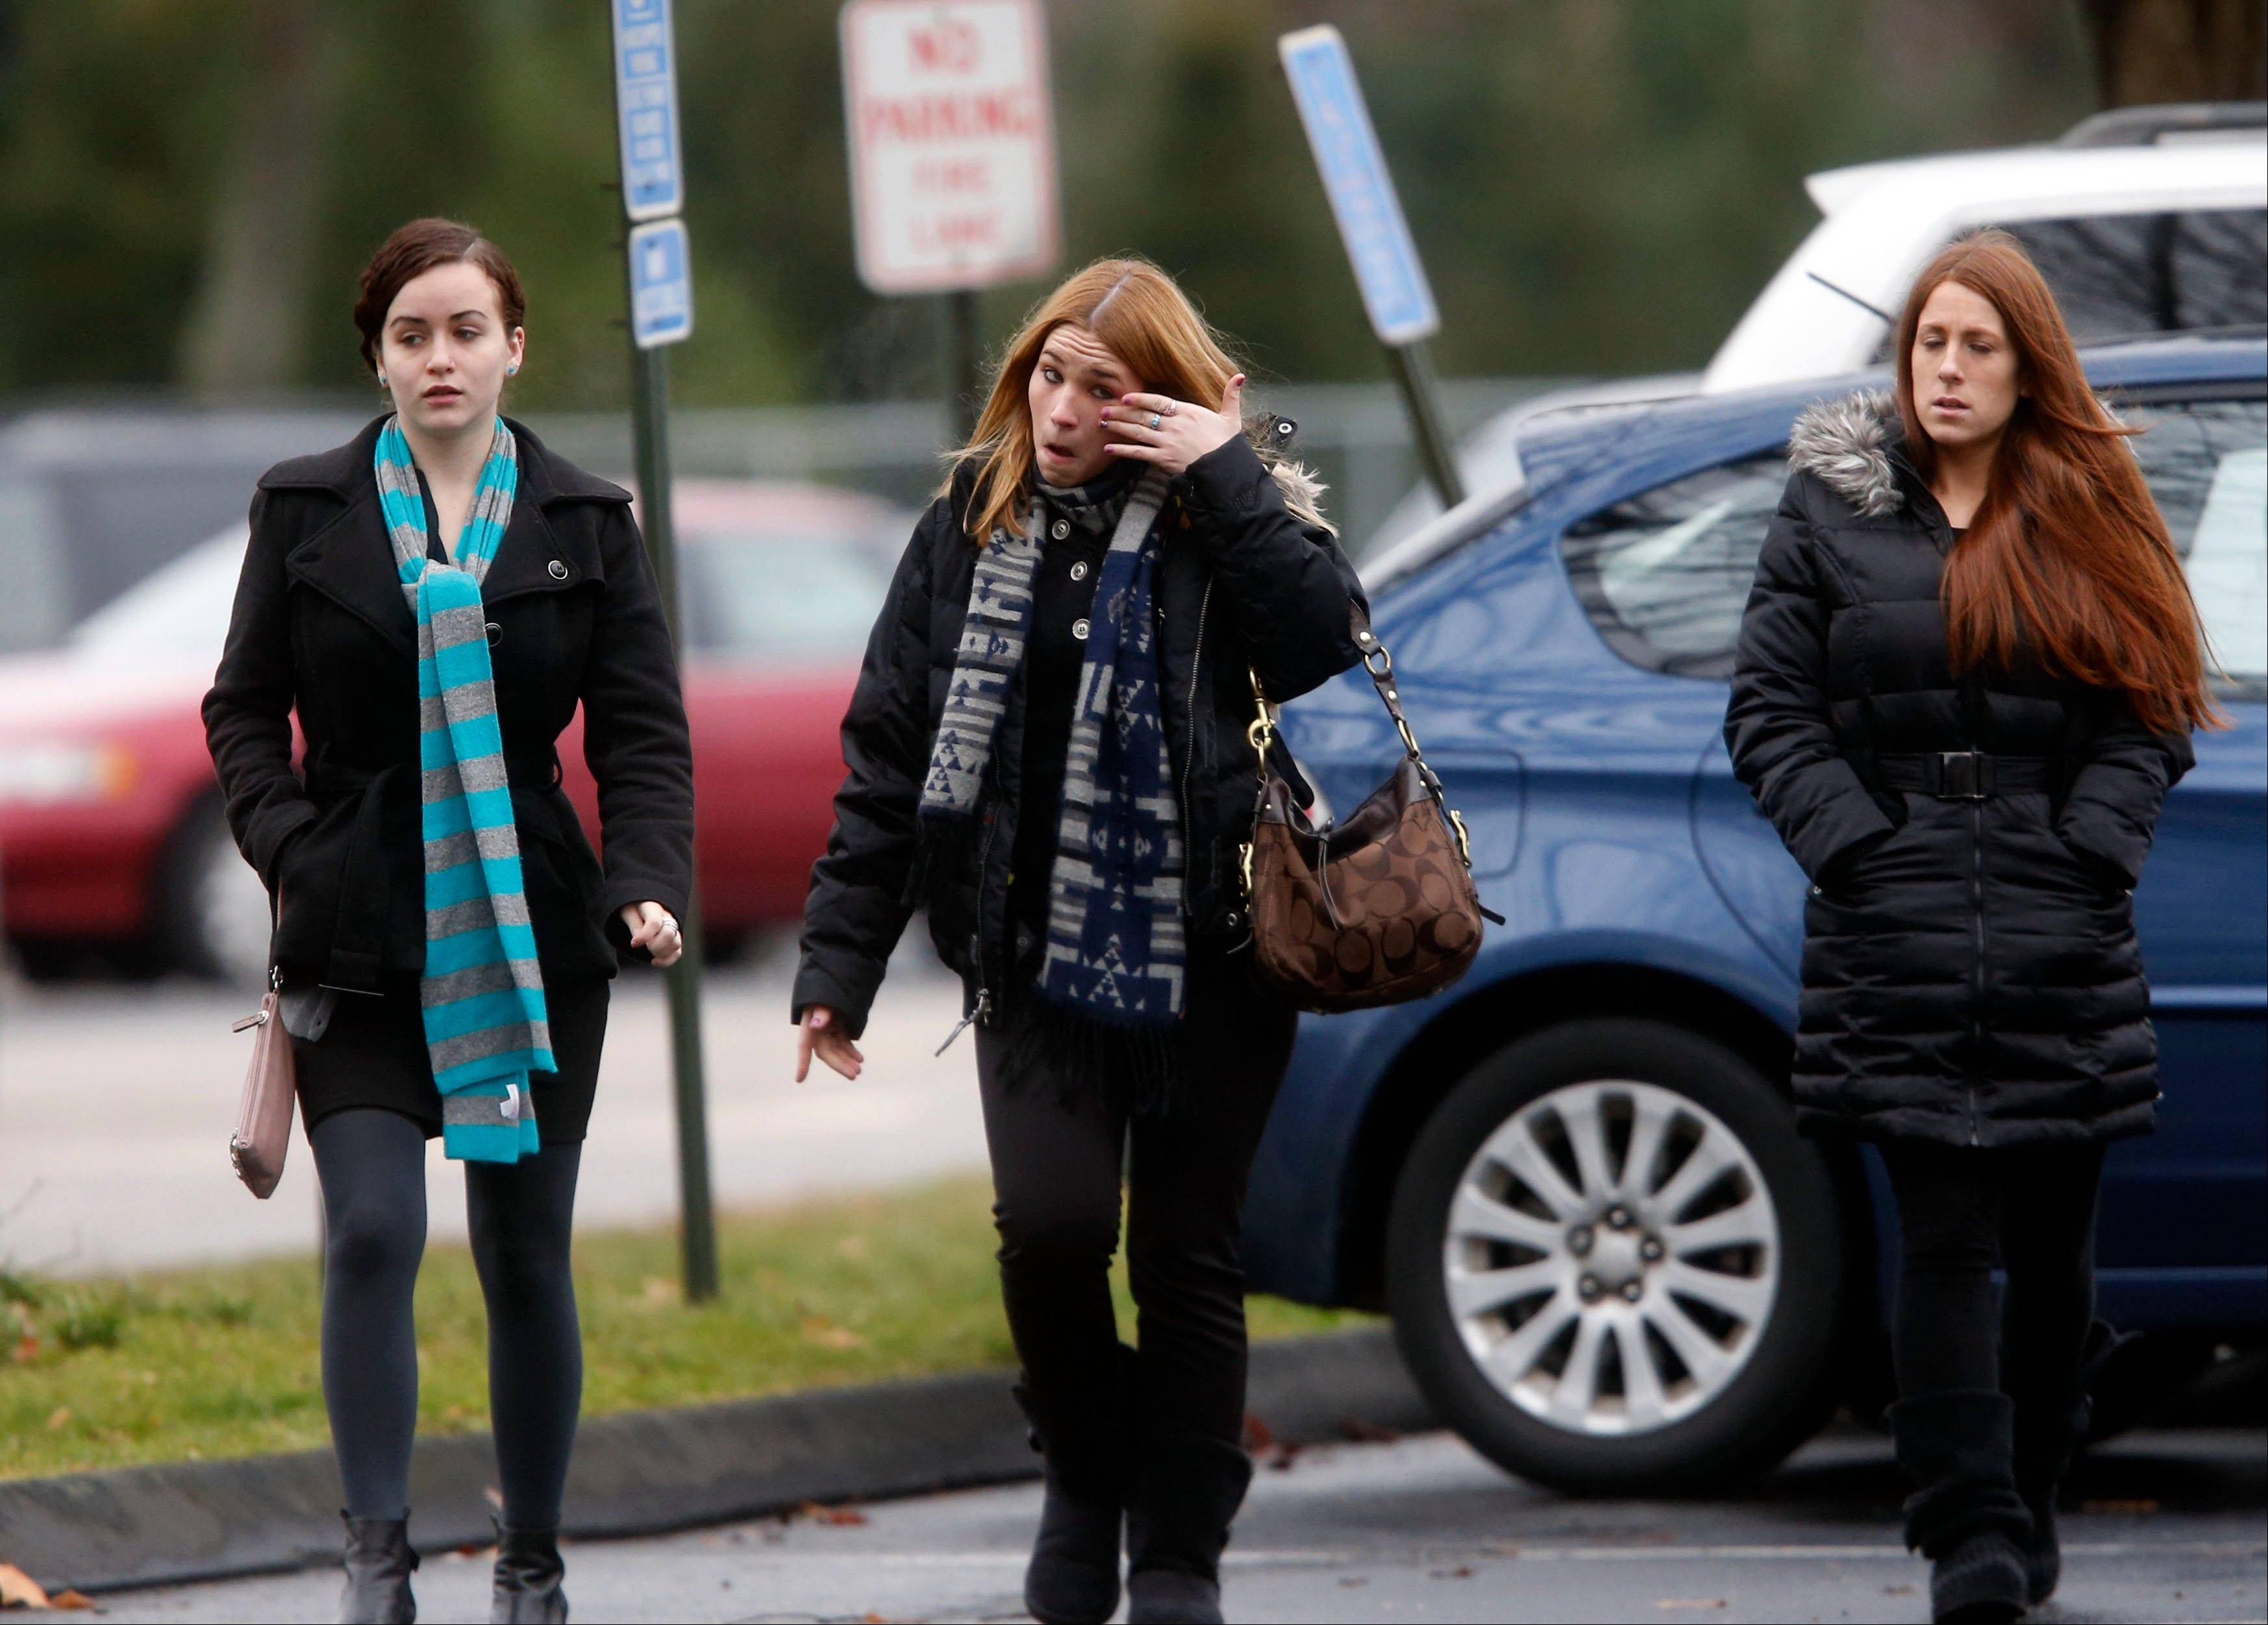 Mourners arrive at a funeral service for 6-year-old Noah Pozner, Monday, Dec. 17, 2012, in Fairfield, Conn. Pozner was killed when a gunman walked into Sandy Hook Elementary School in Newtown Friday and opened fire, killing 26 people, including 20 children.